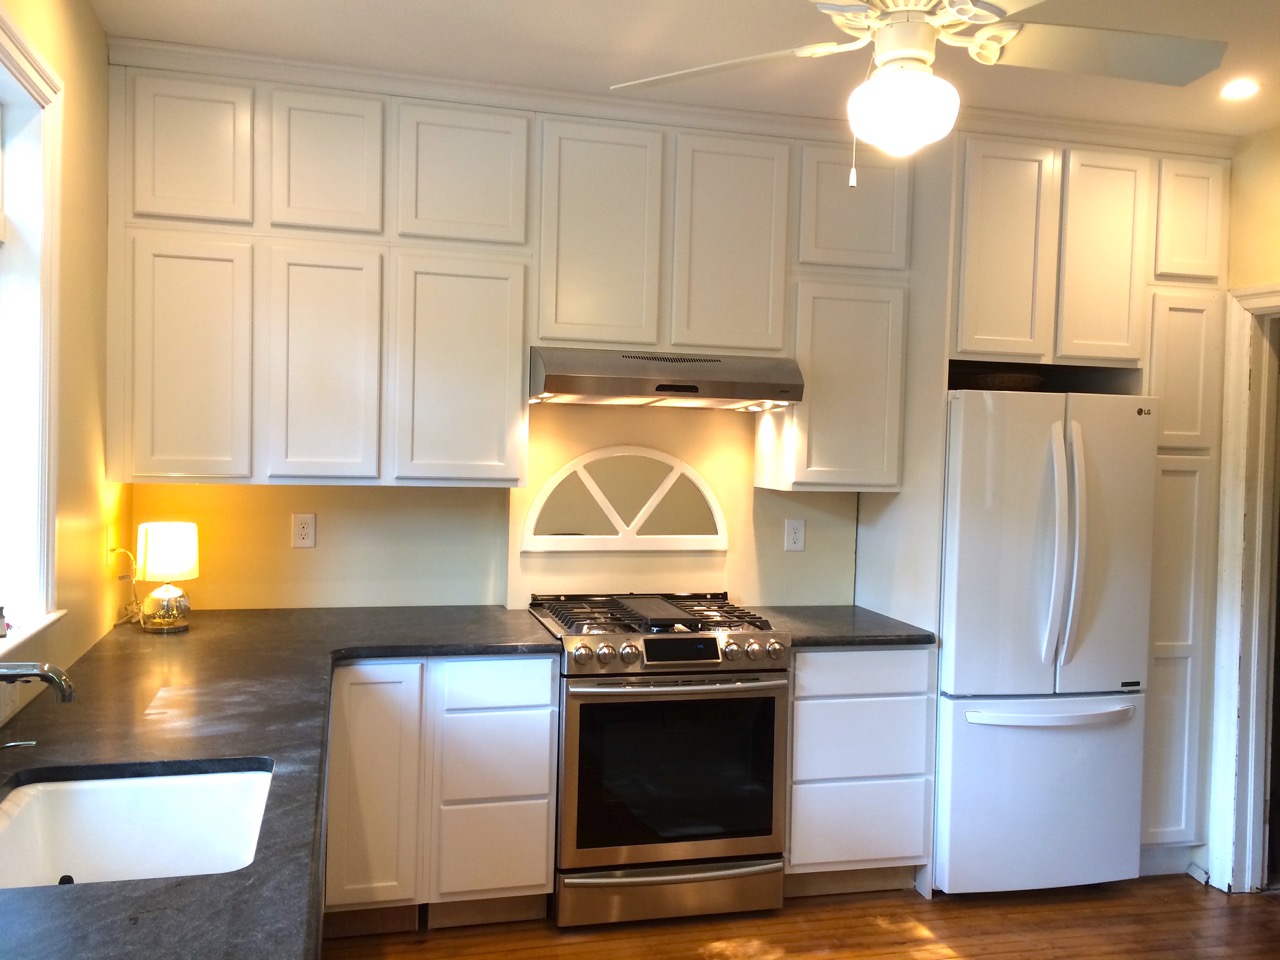 Additional photo for property listing at Newly Renovated Duplex on Moore Street 42 Moore Street Princeton, Нью-Джерси 08540 Соединенные Штаты